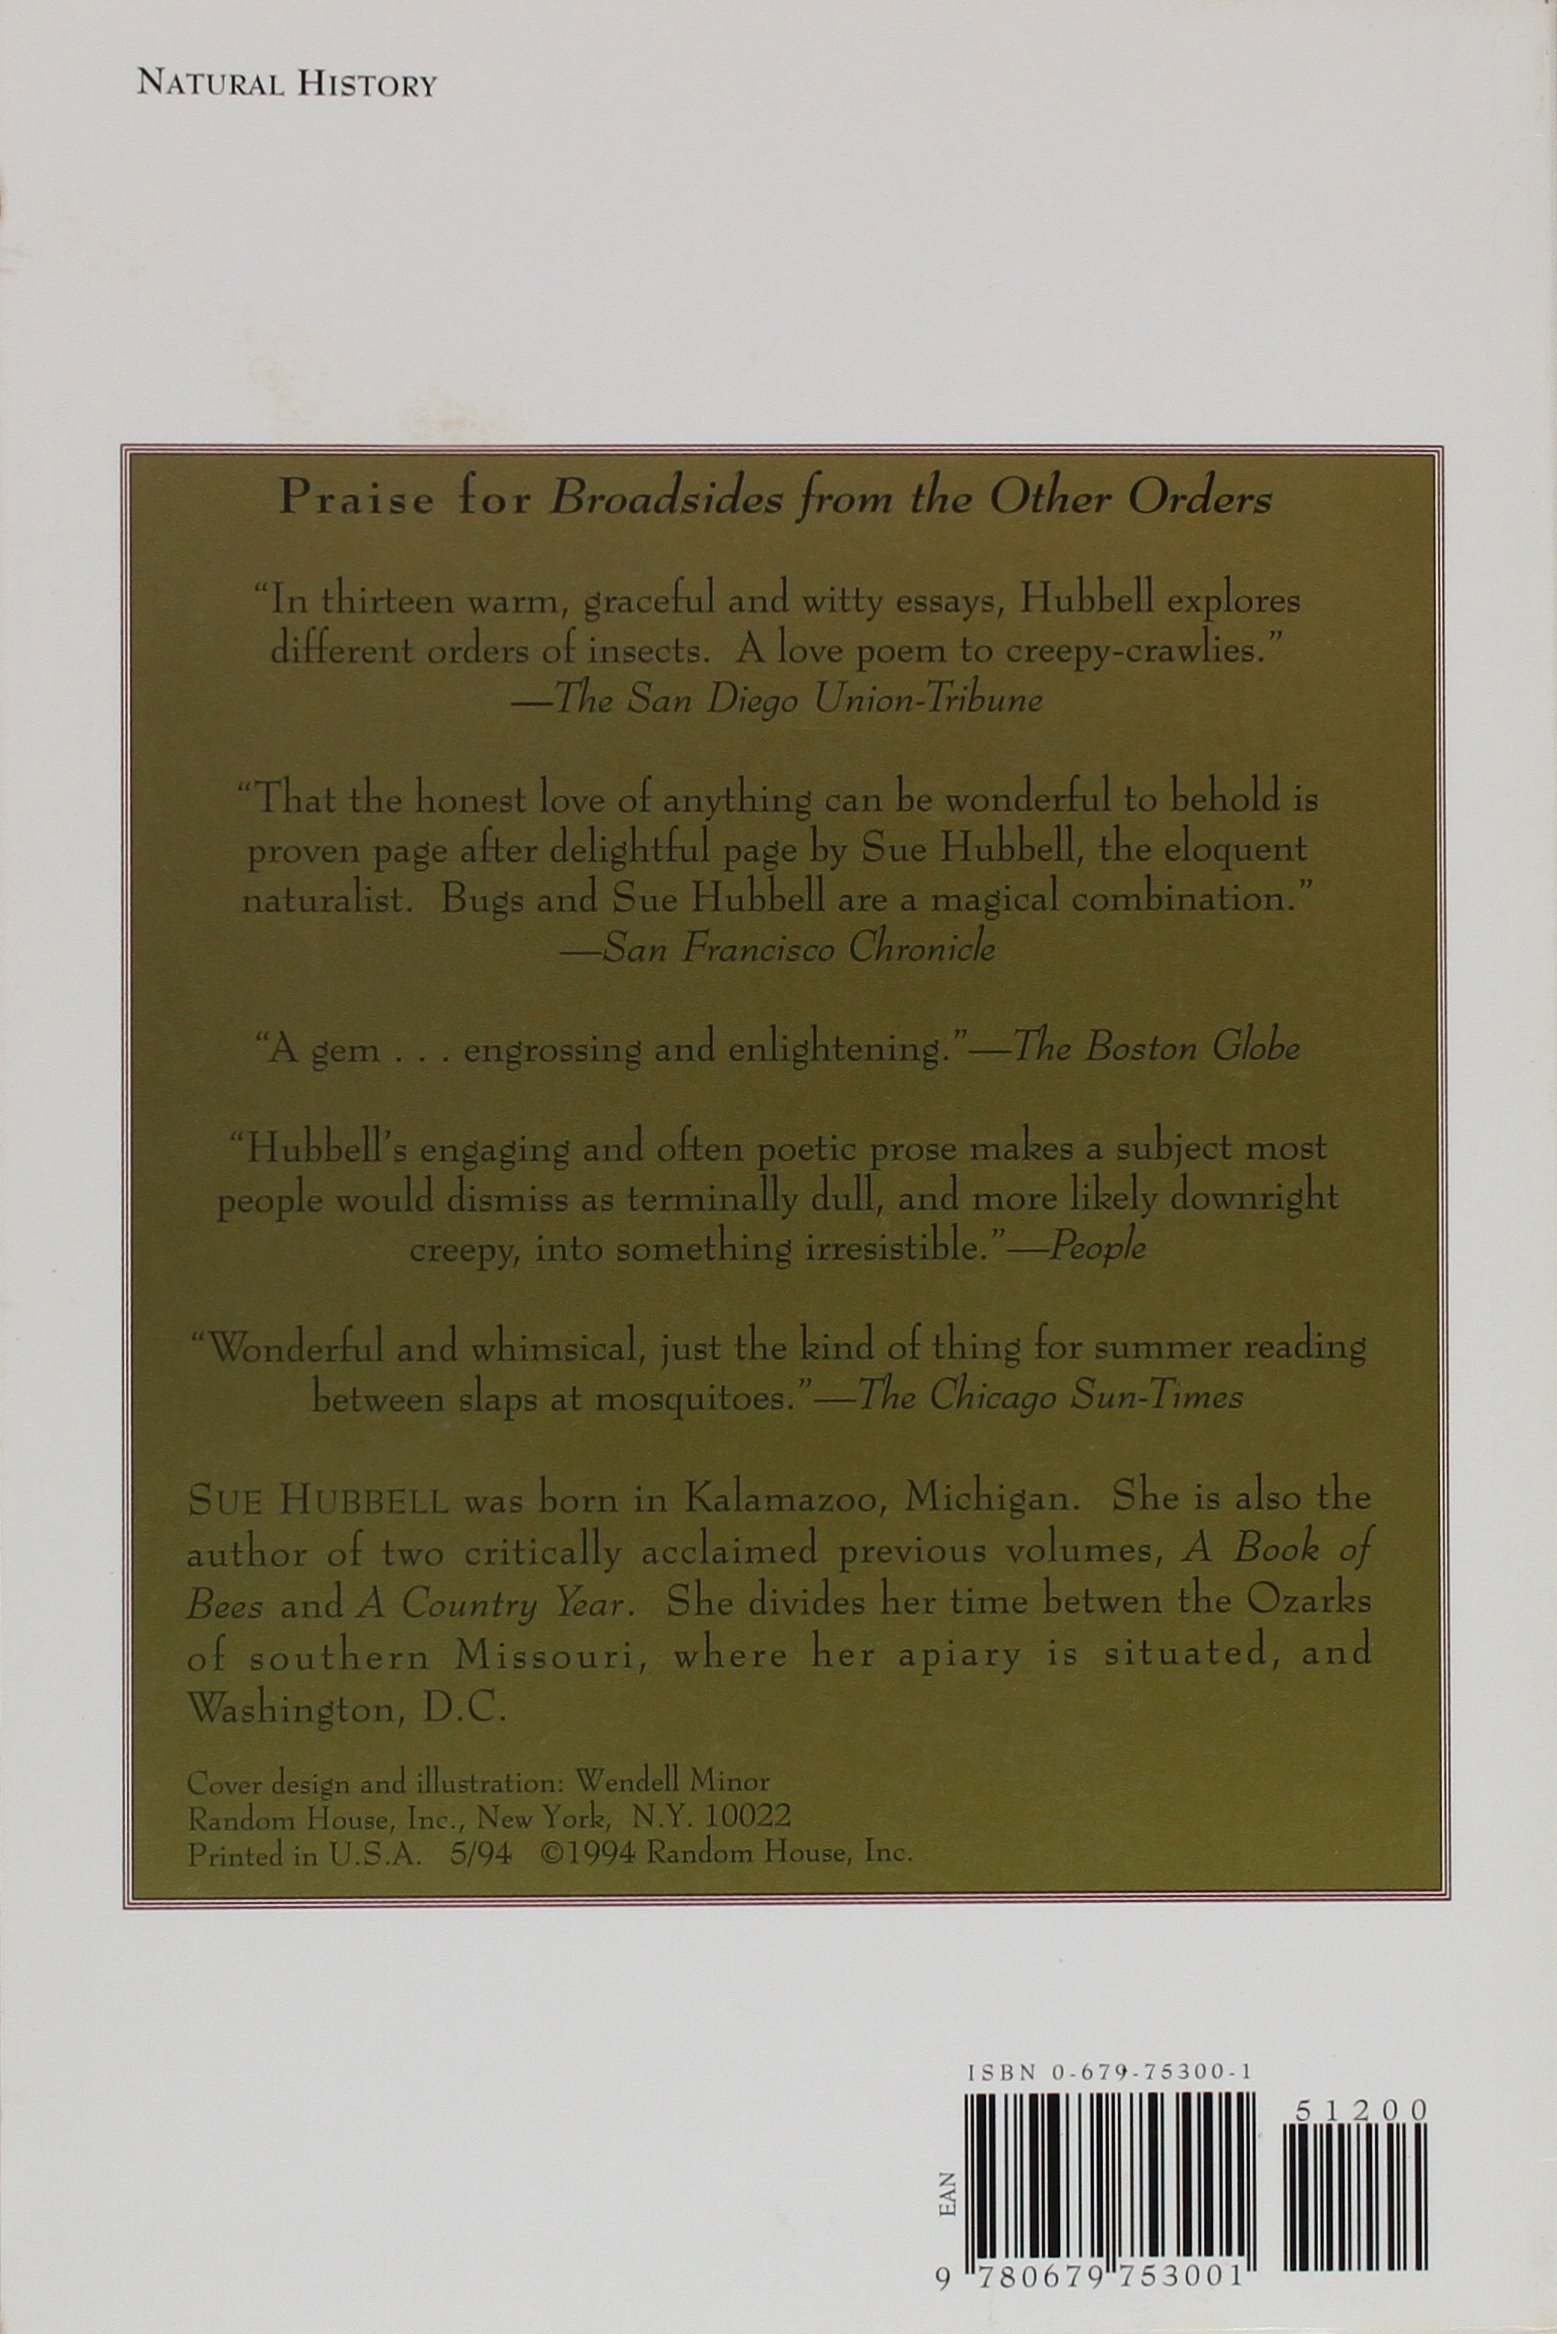 broadsides from the other orders a book of bugs sue hubbell